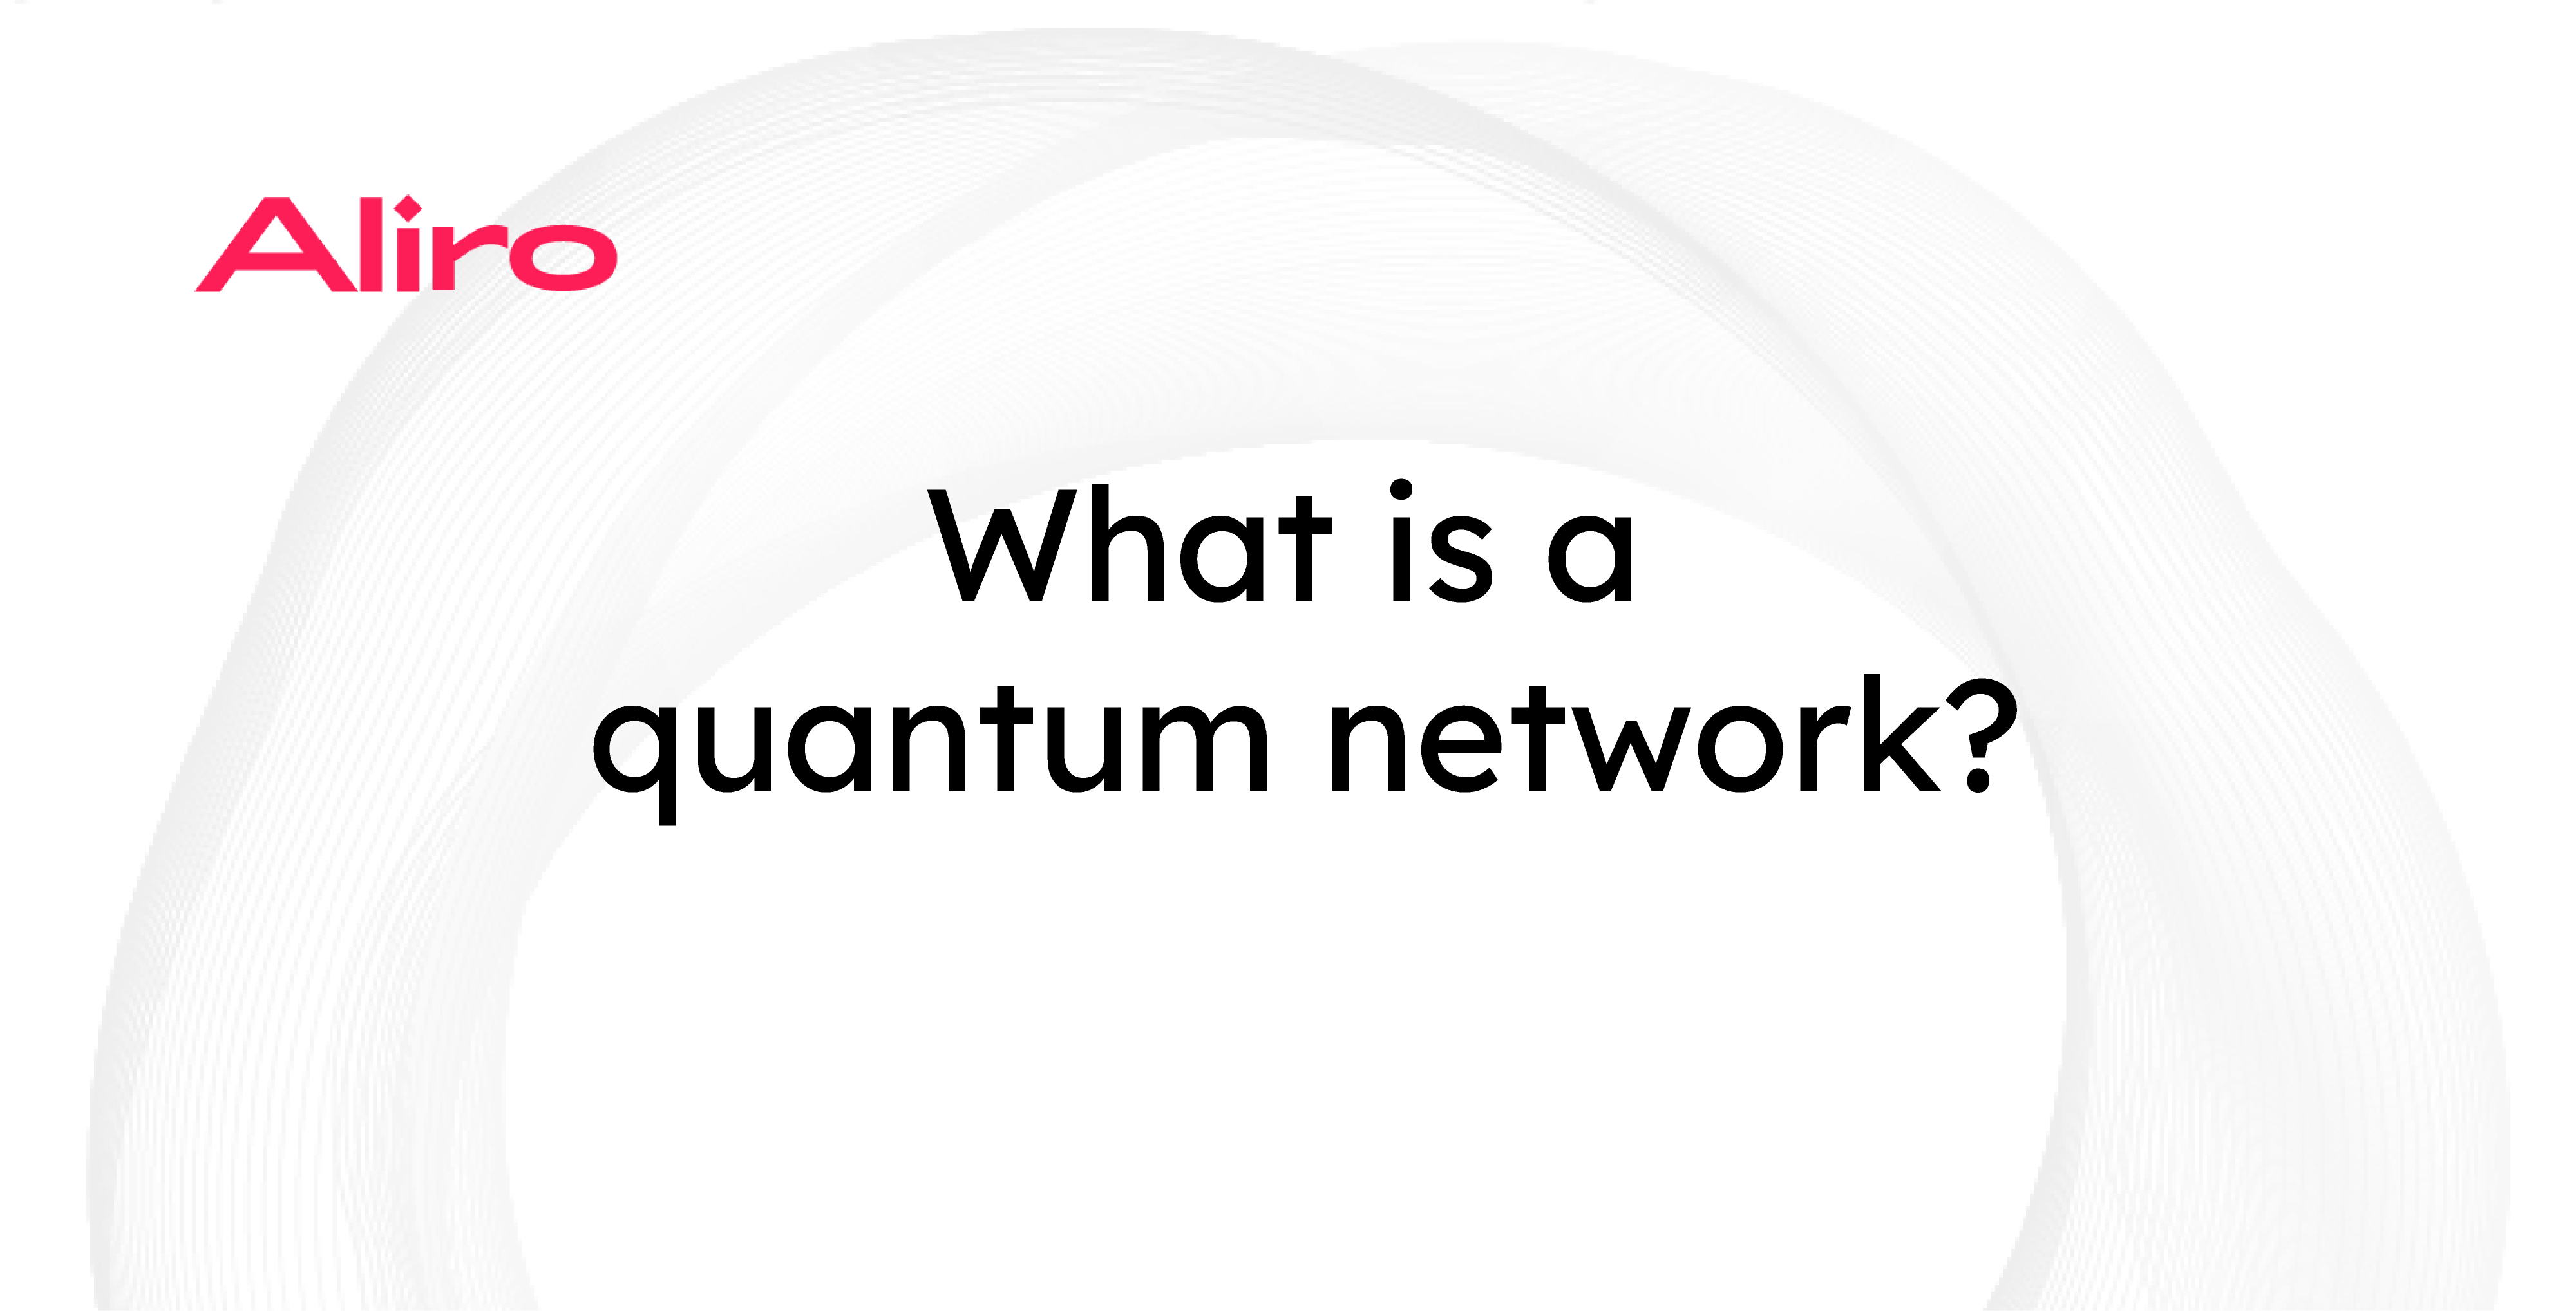 What is a quantum network?